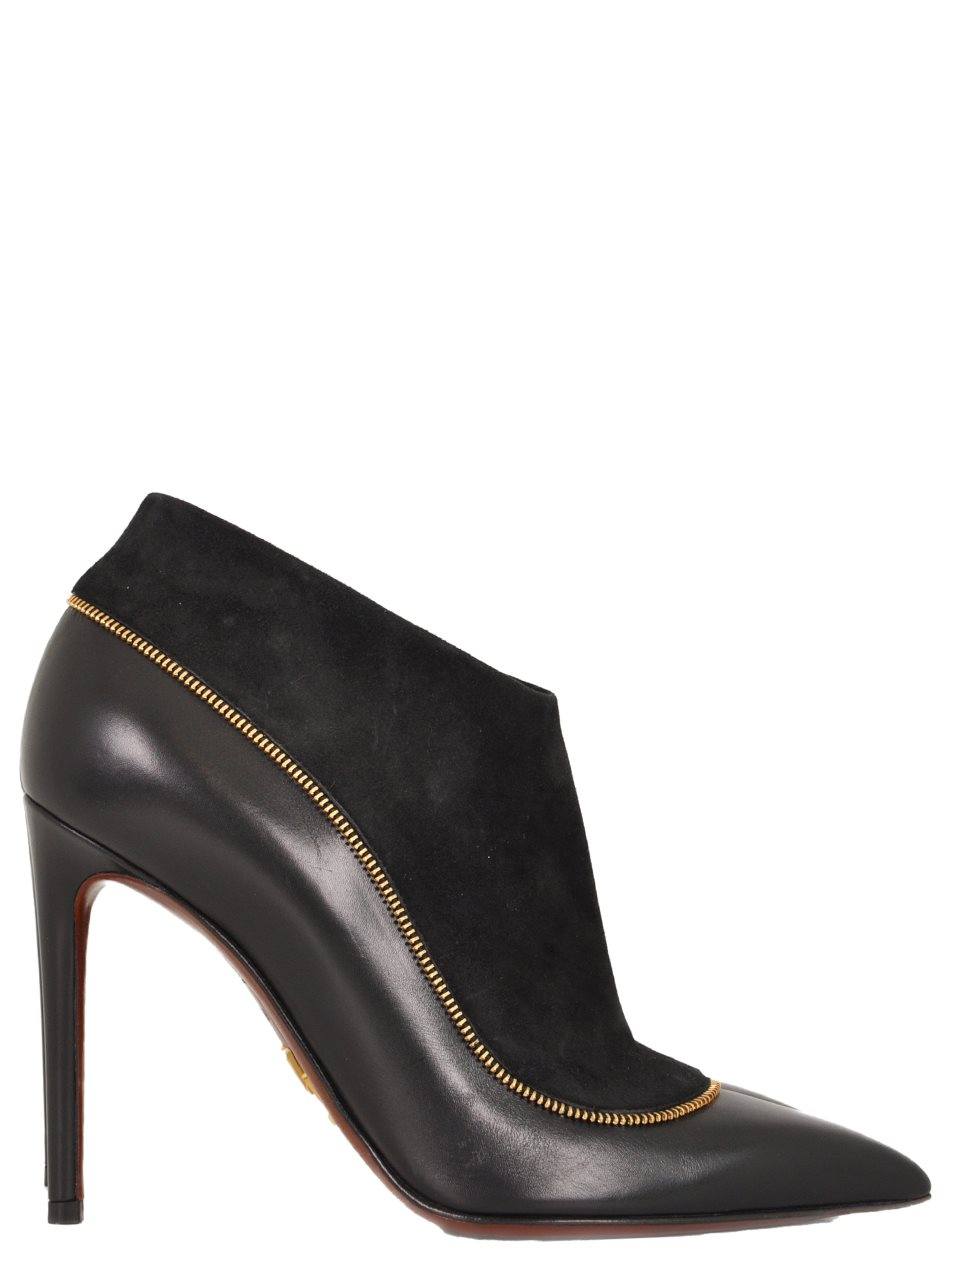 Louis Vuitton - Zip Trimmed Suede and Leather Bootie